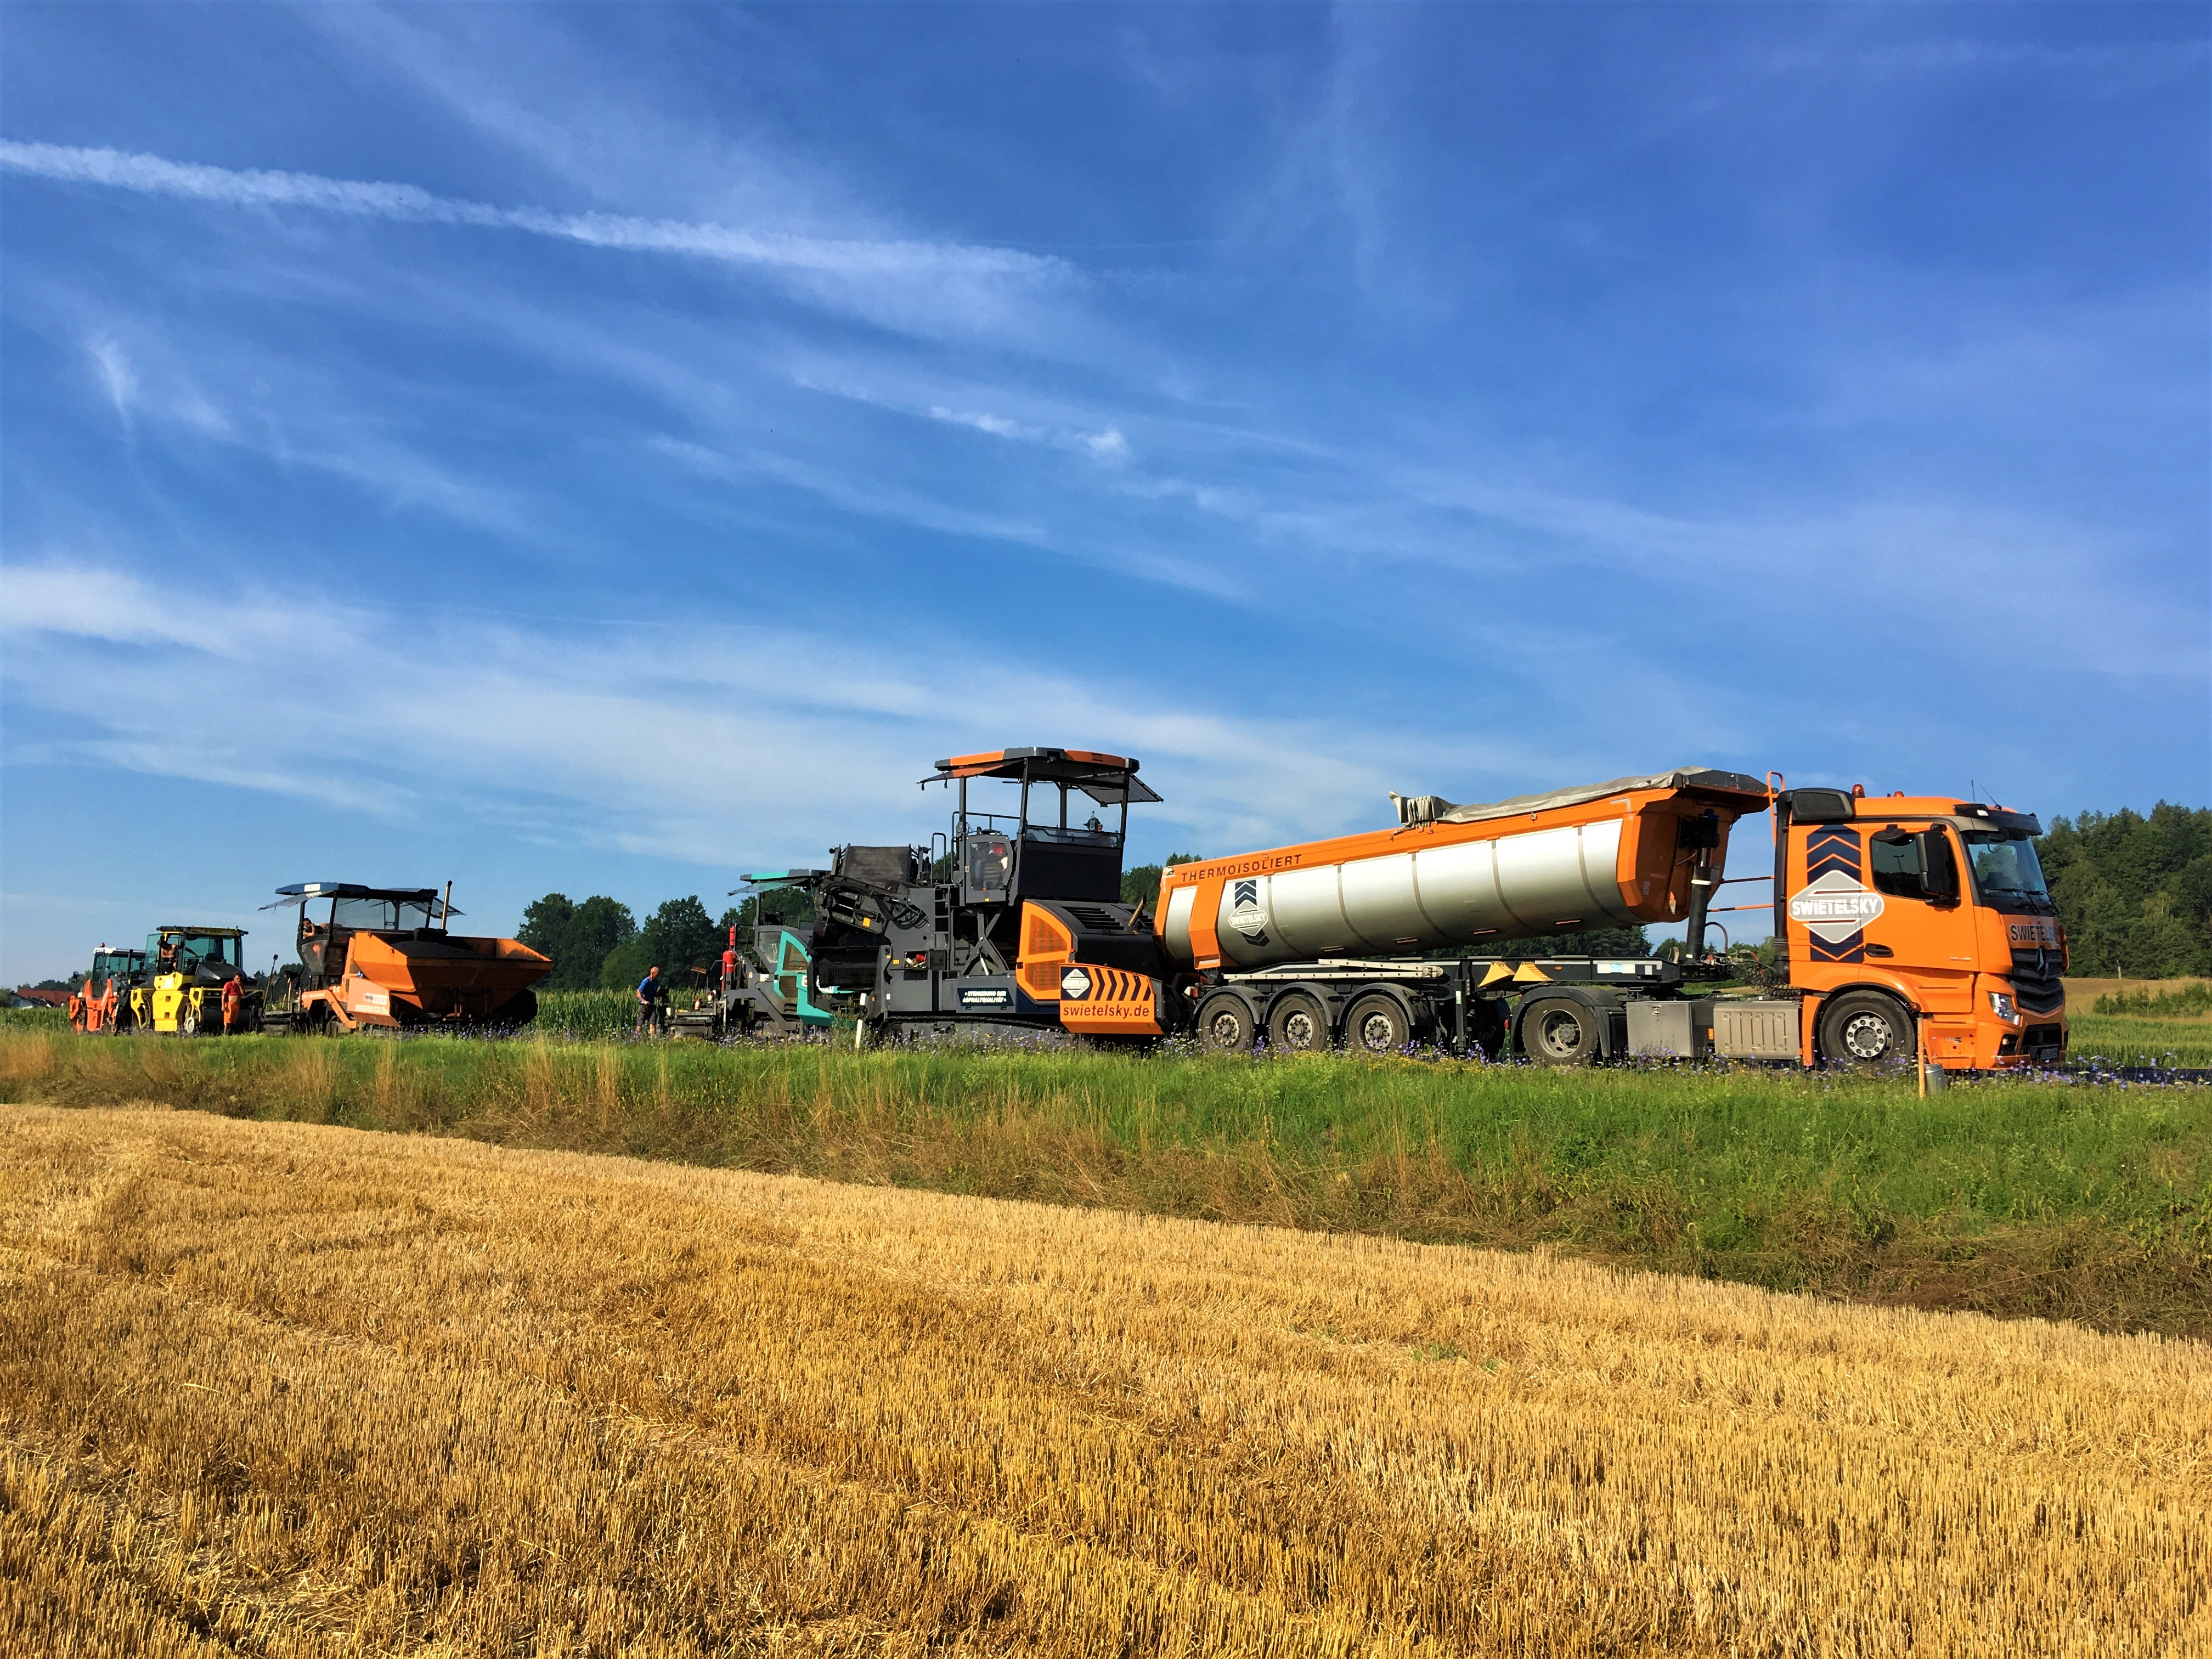 Inst. Mainburg-Appersdorf - St. Bauamt Landshut - Road and bridge construction